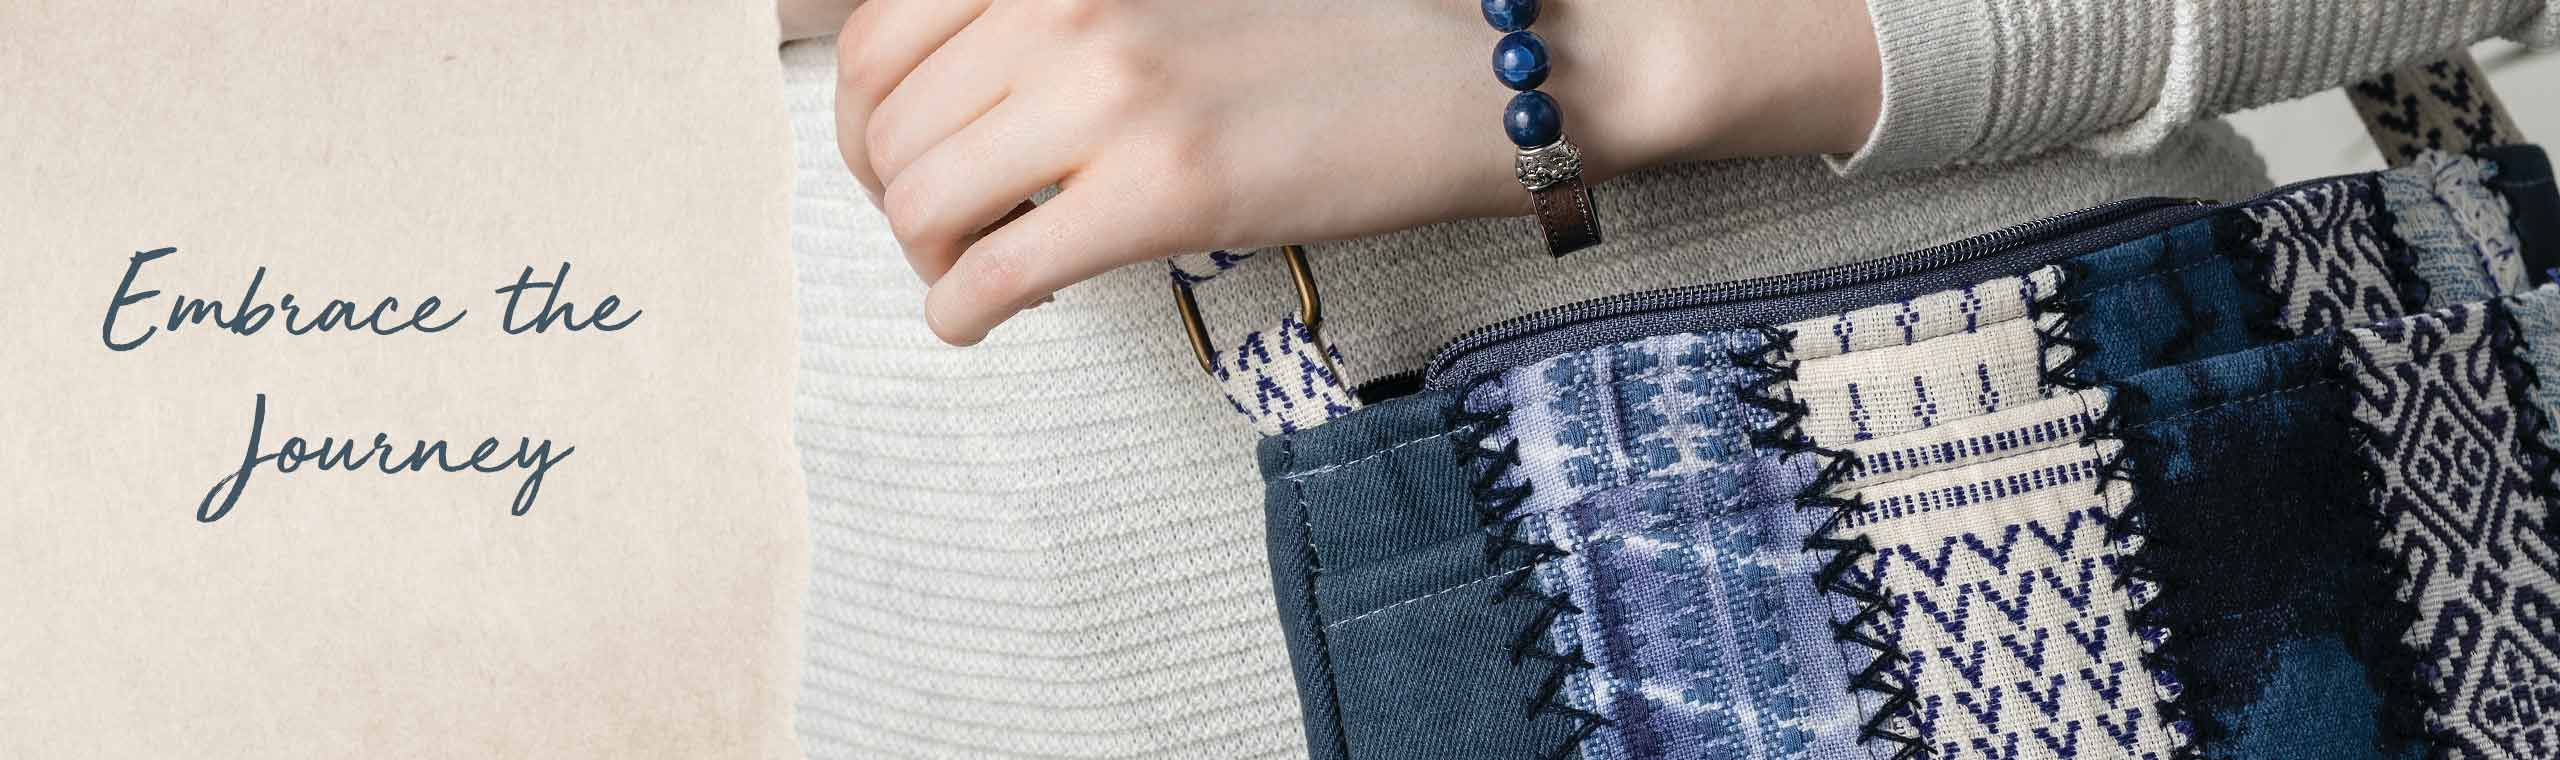 Embrace the Journey. Closeup of woman carrying a blue hand-stitched bag and wearing a blue beaded bracelet